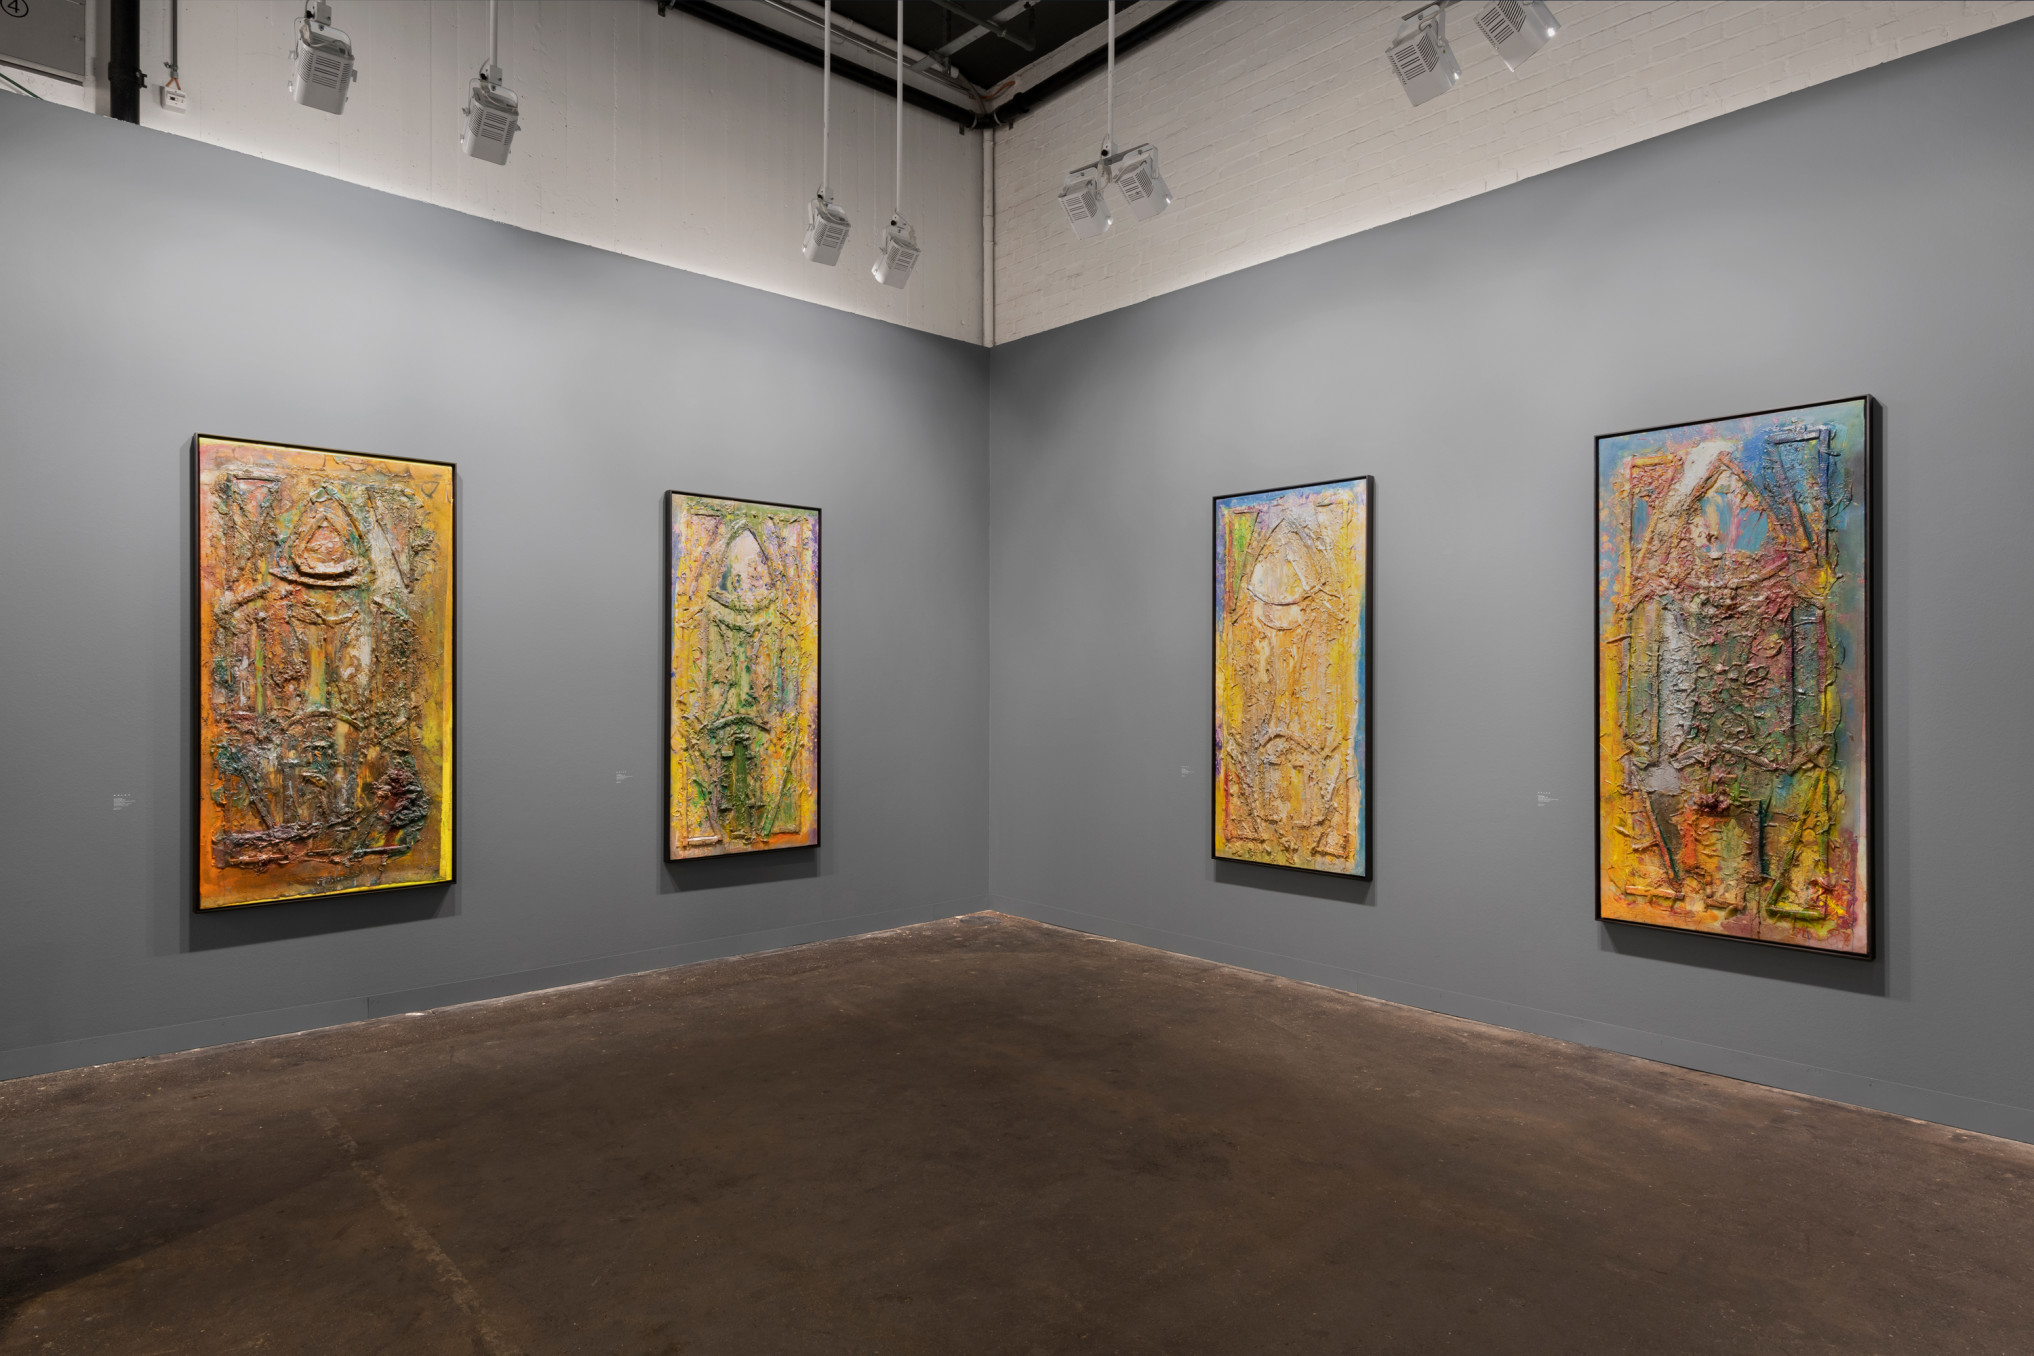 Frank Bowling, Installation view, Hales Gallery at Art Basel, Switzerland | Booth J12, 'Frank Bowling: The Cathedral Paintings', 12 - 16 June 2019